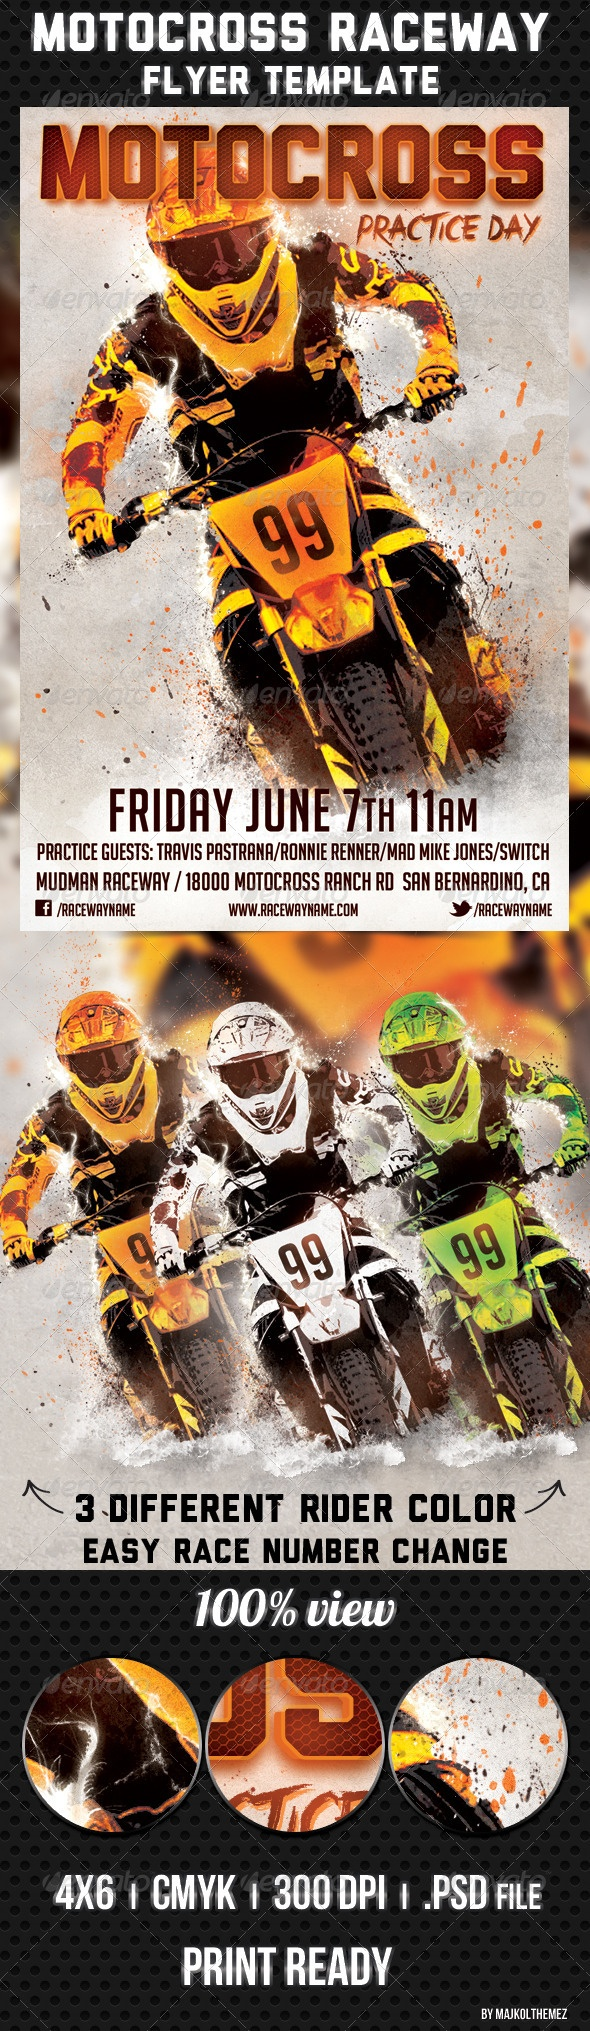 Motocross Raceway Flyer Template  Motocross Raceway Flyer Template Good way to promote your Motocross/Enduro/Supercross Race event/track/practice days or races. Tree different color rider with editable race number.